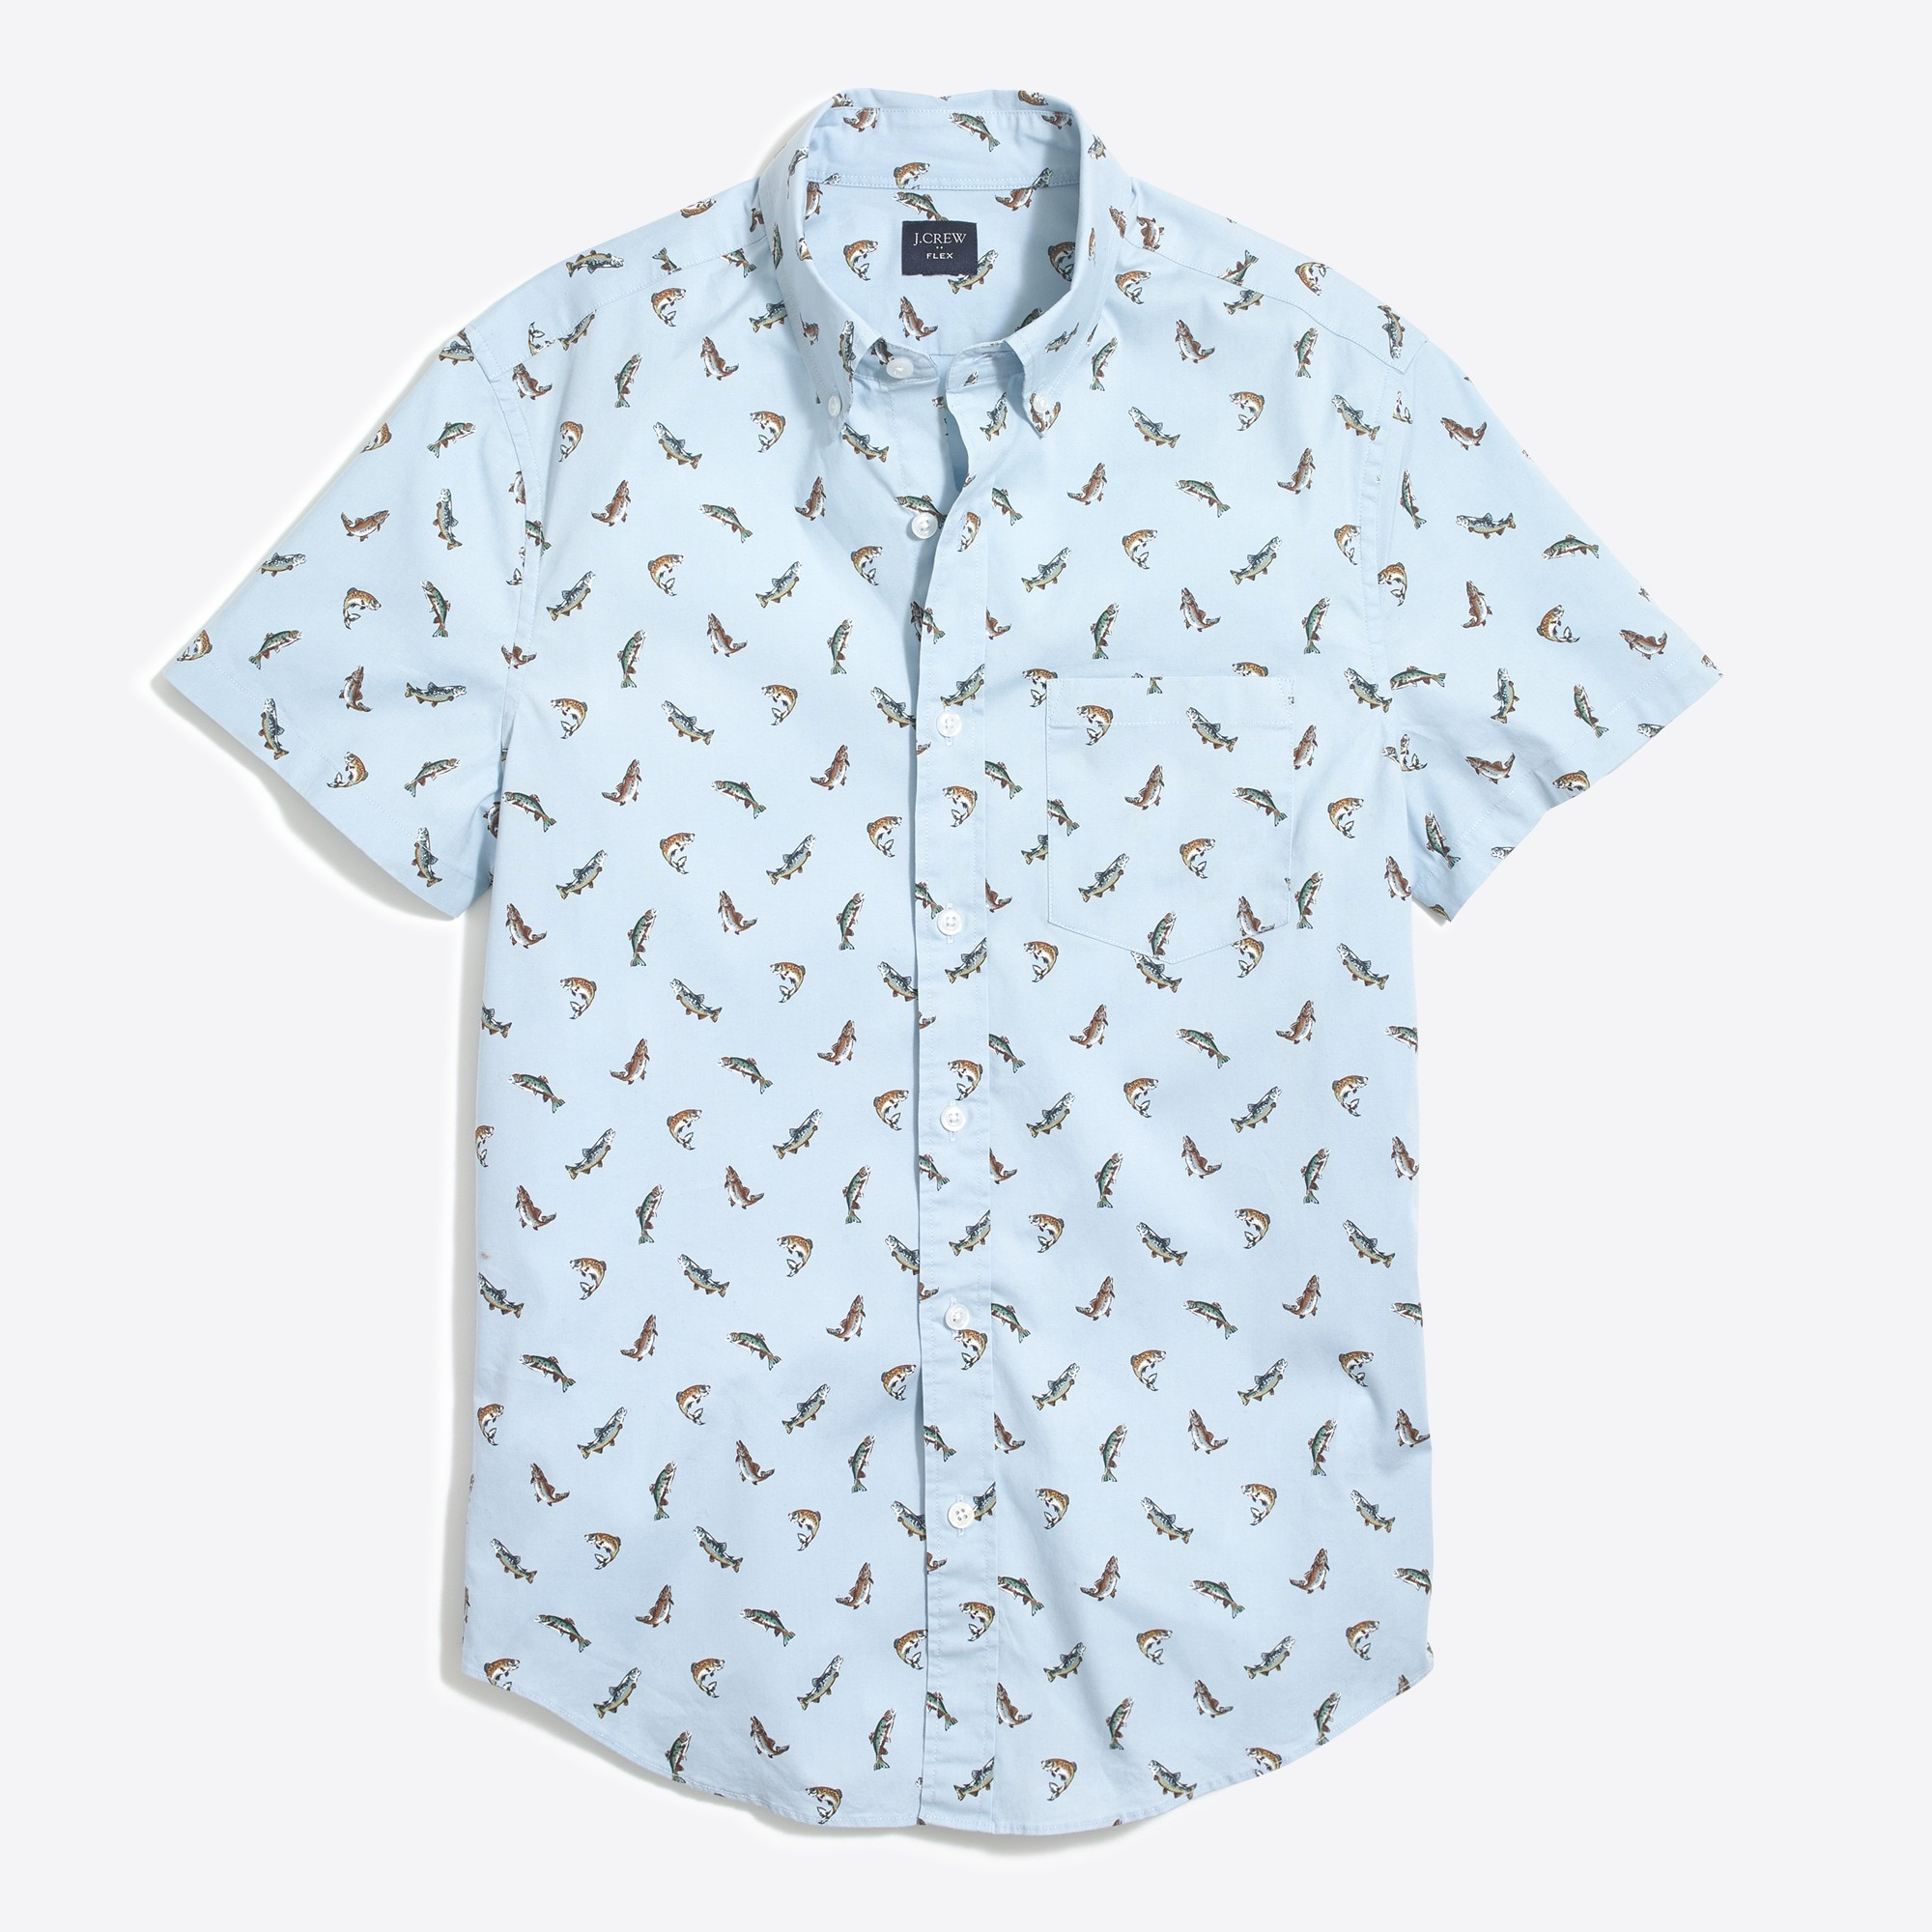 Image 2 for Slim-fit short-sleeve flex trout printed shirt